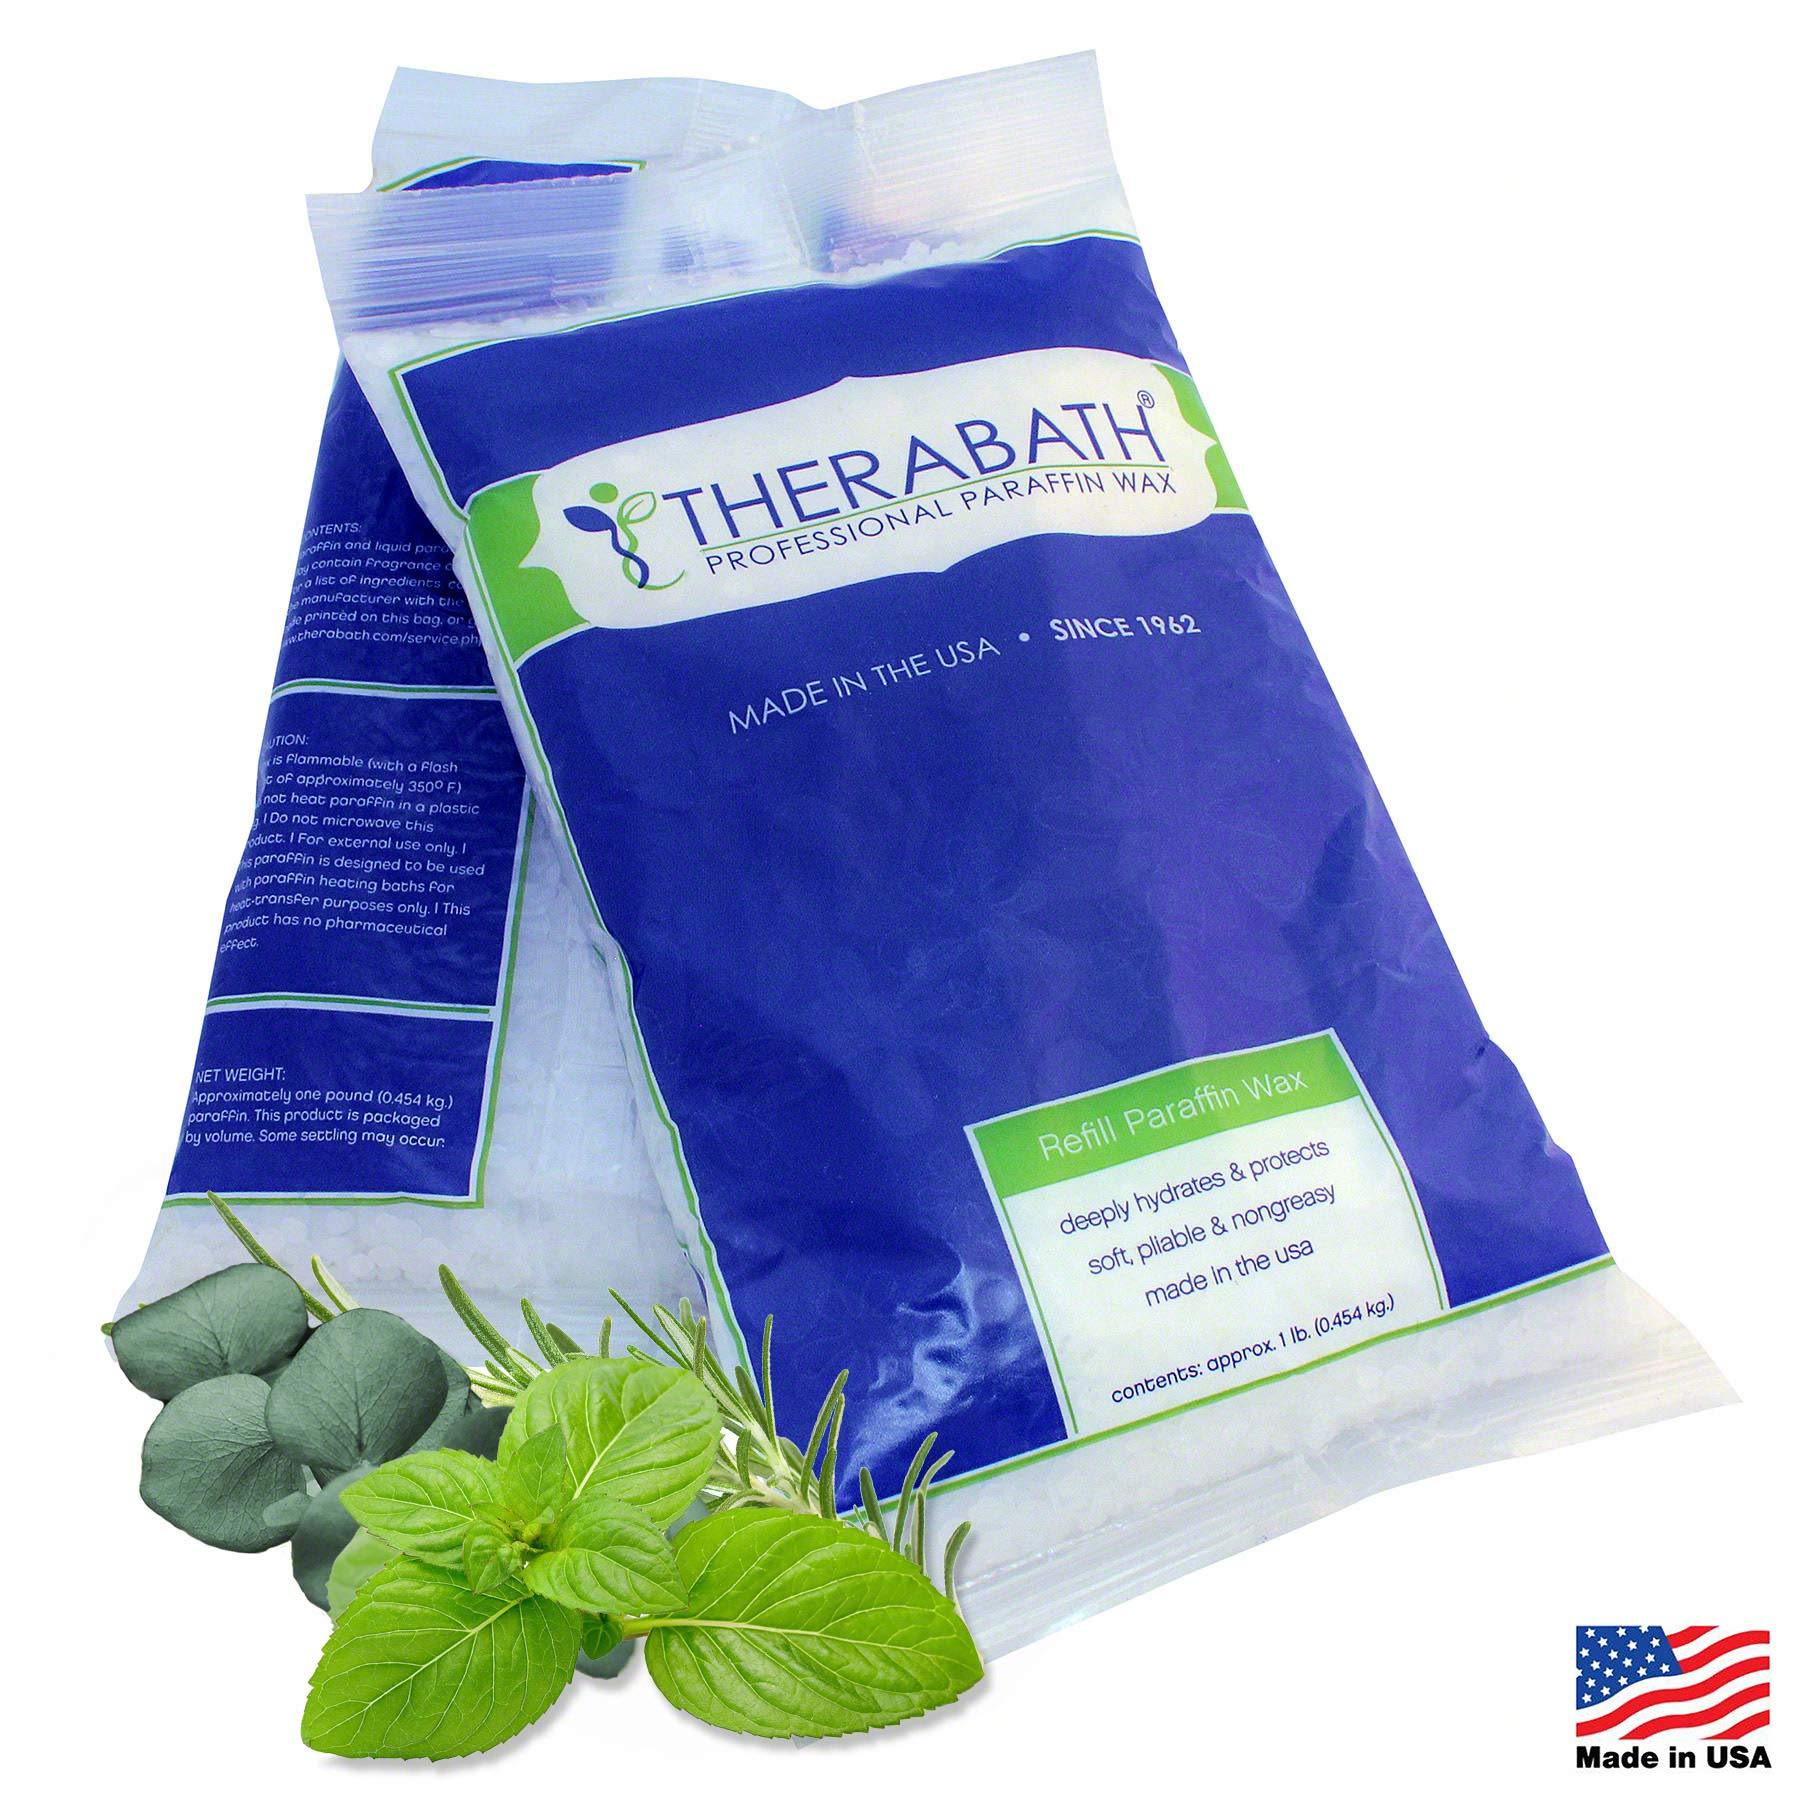 Therabath Refill Paraffin Wax, Eucalyptus Rosemary Mint, 6 1-lb Bags by Therabath